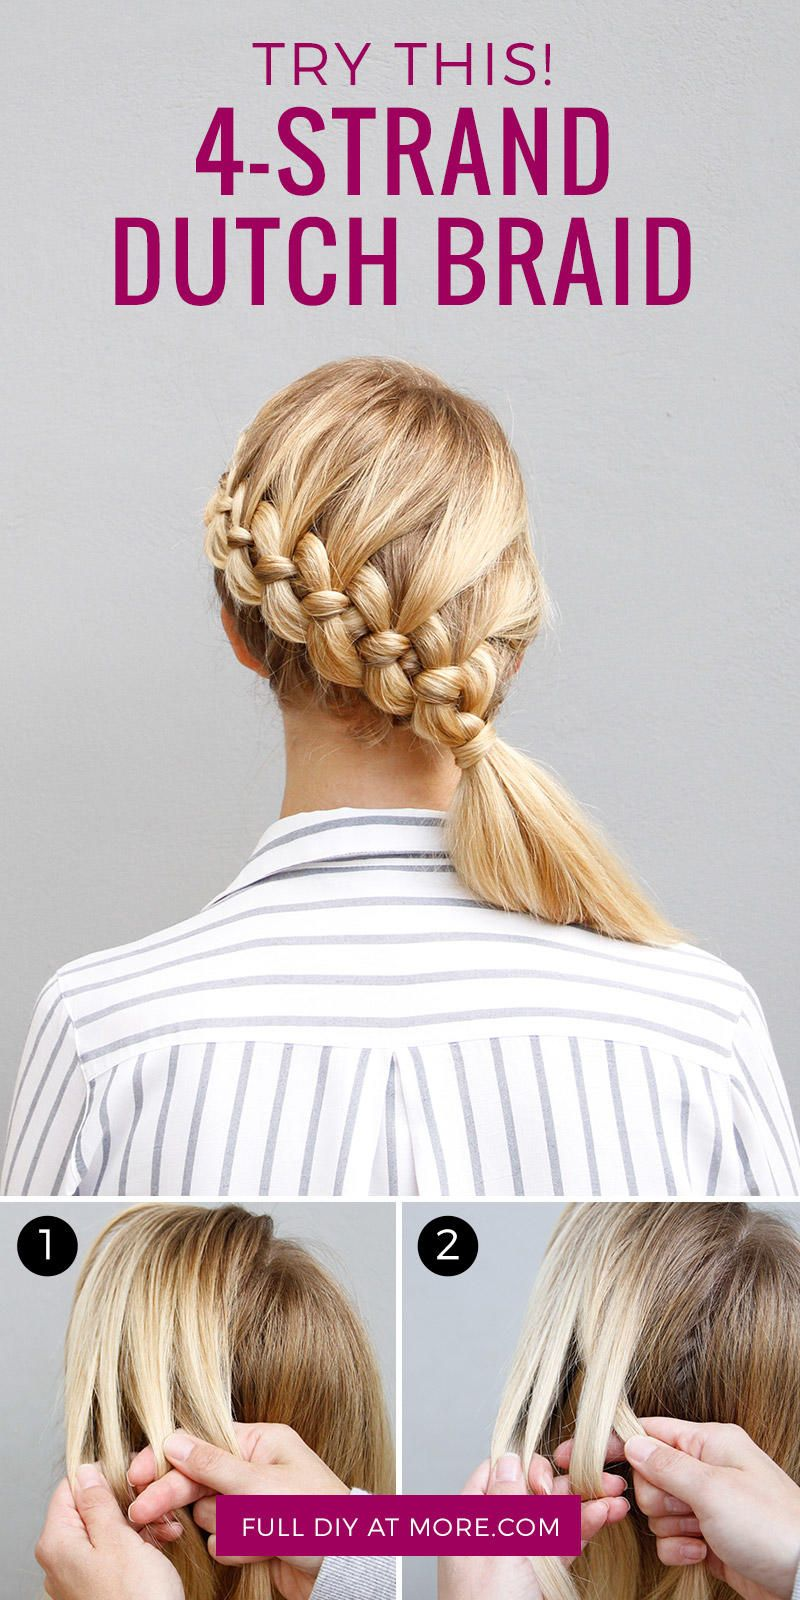 Four-strand braid - for the beauty girl